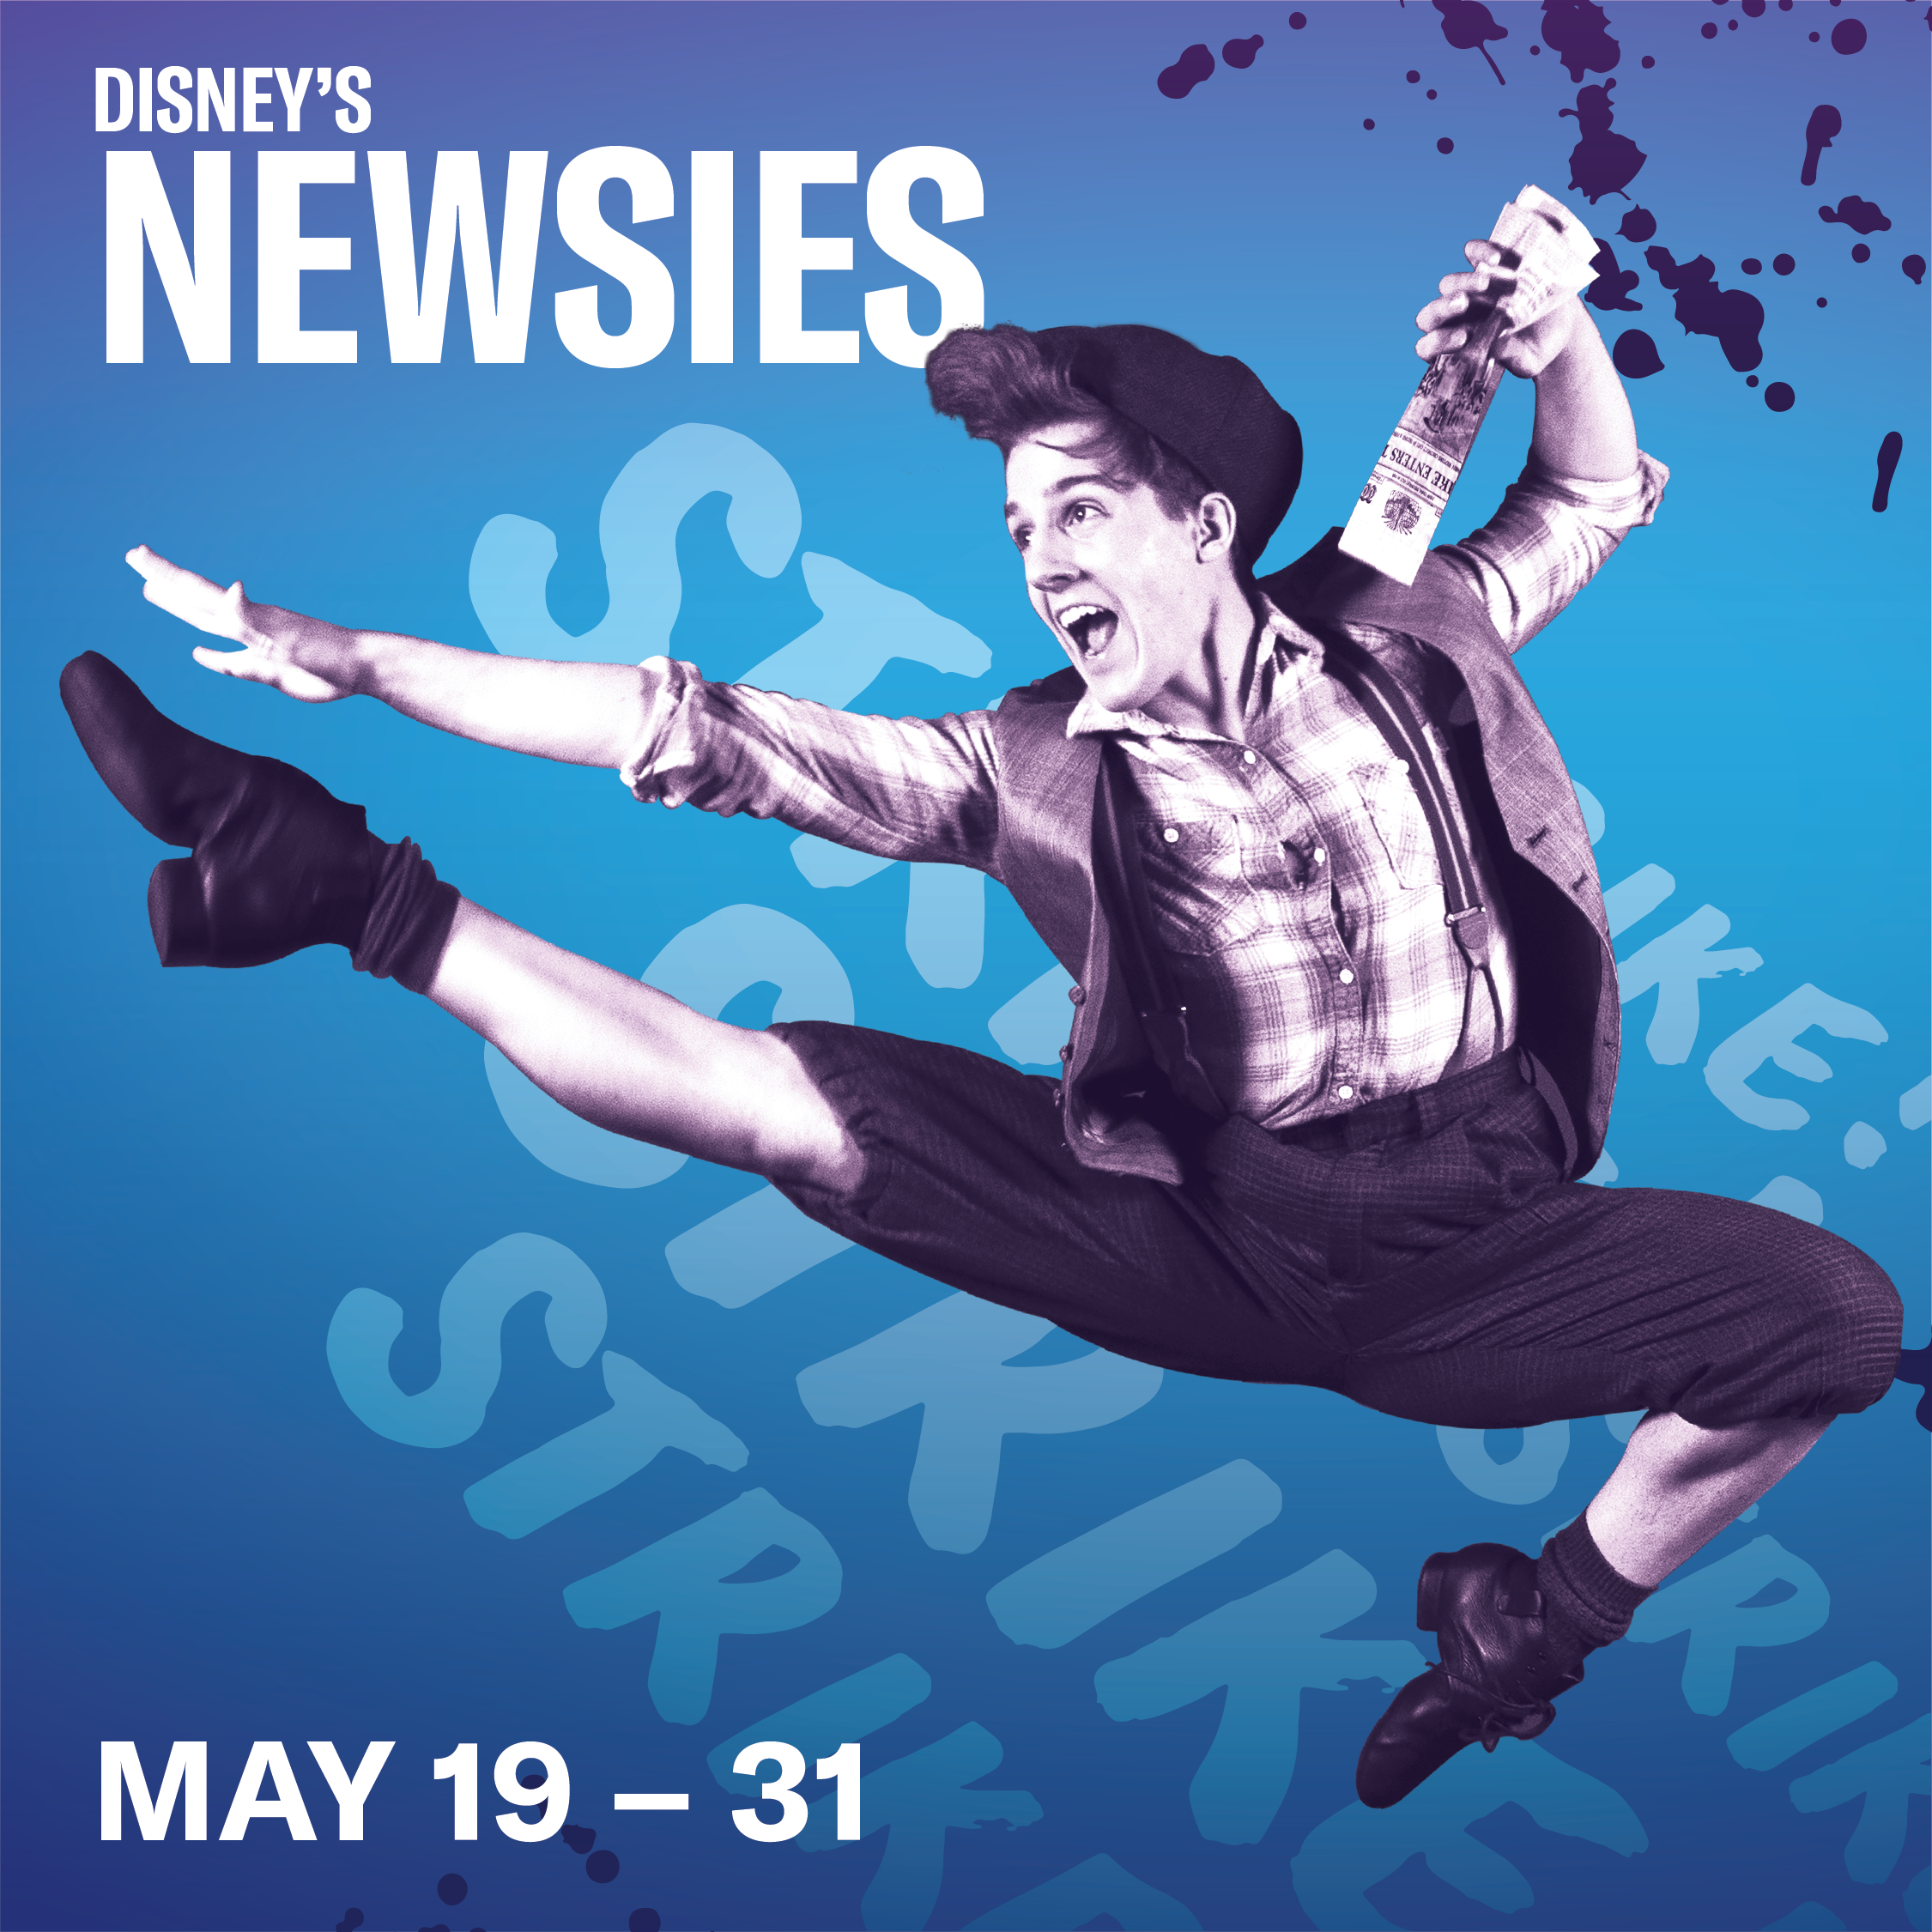 <b>Disney's Newsies</b>